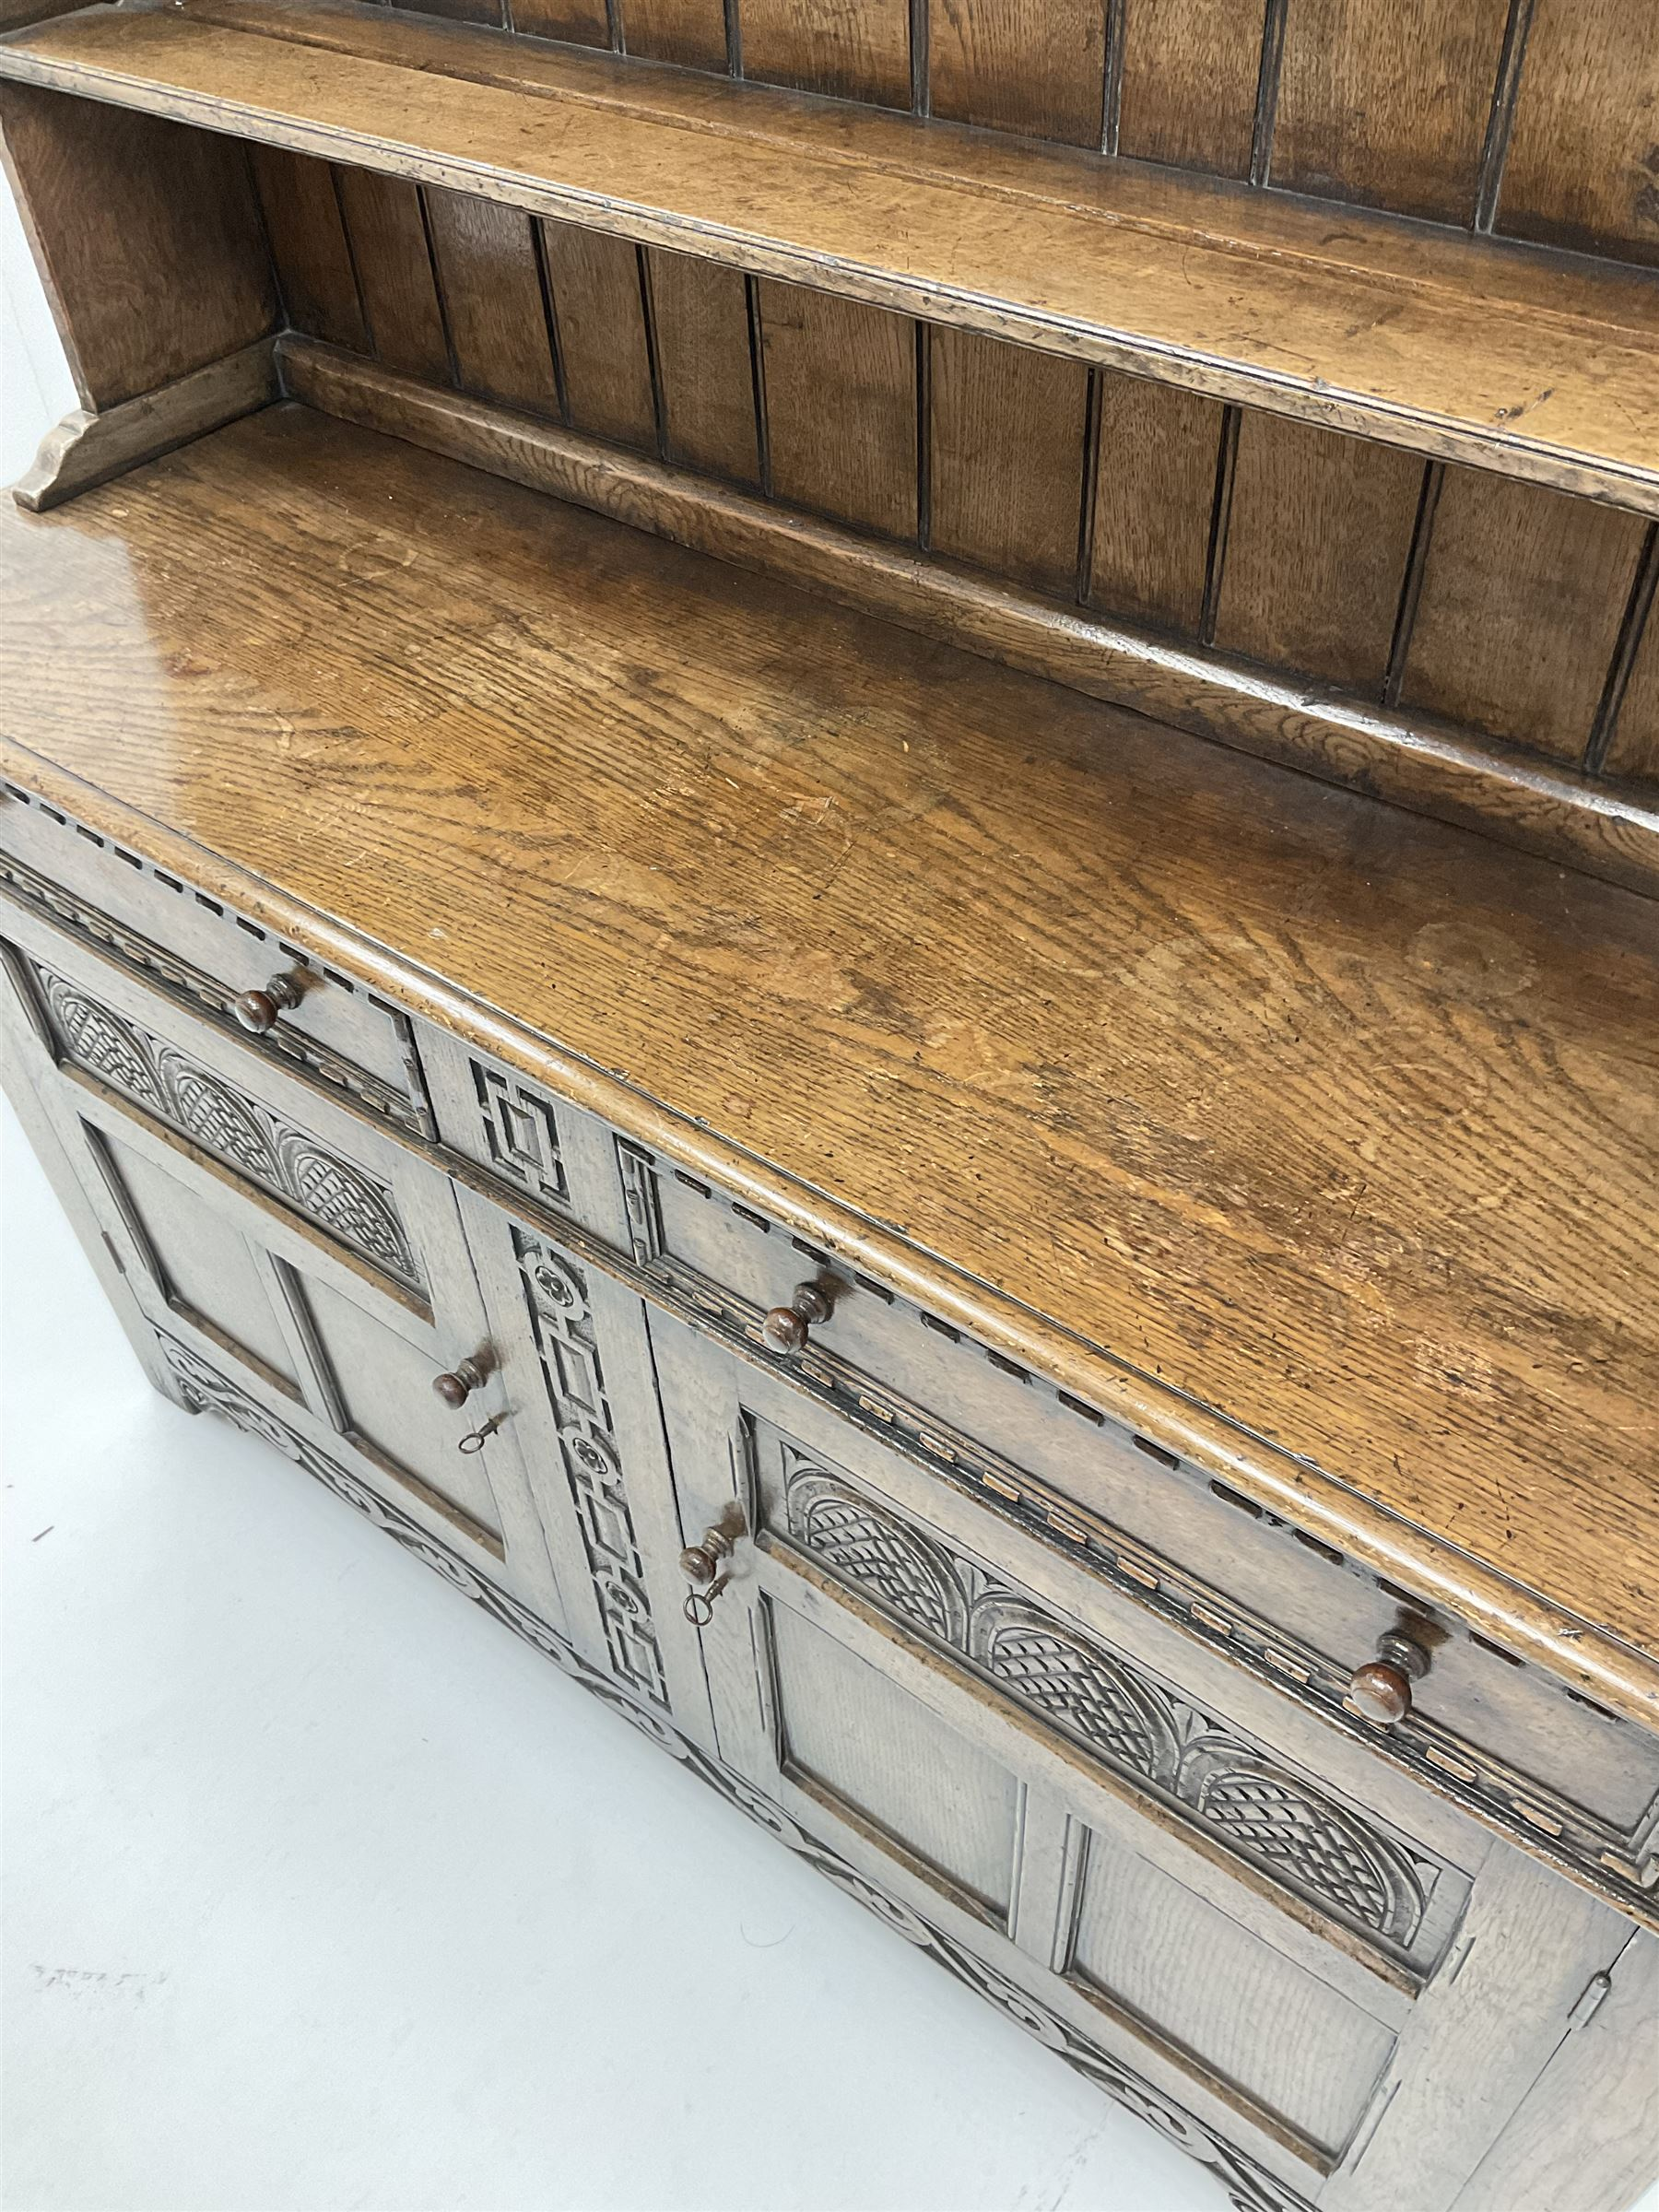 Jacobean style carved oak dresser fitted two drawers and two cupboards - Image 2 of 2